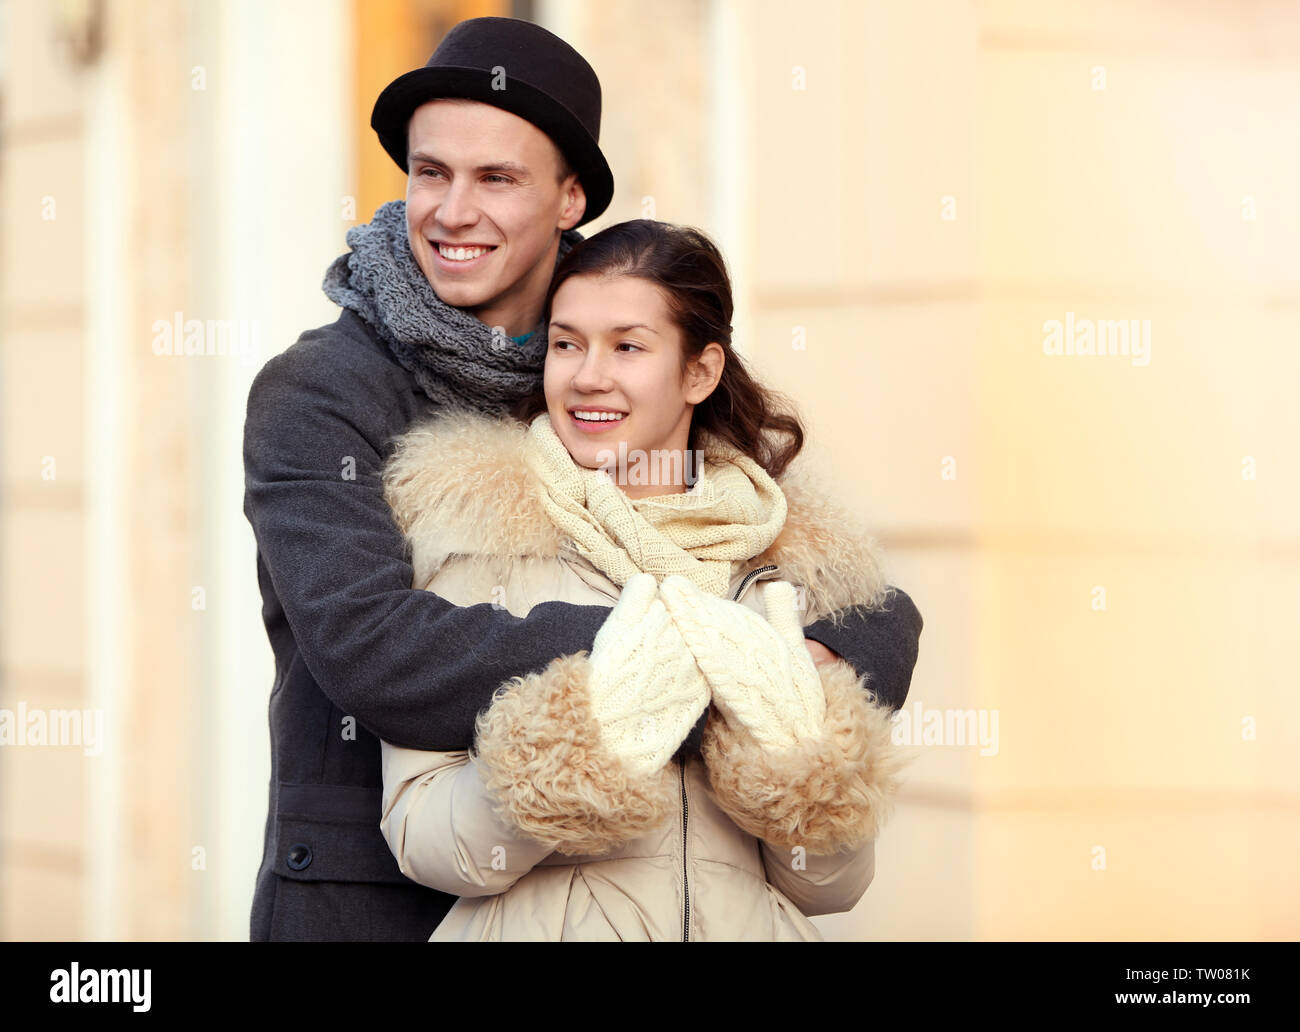 Young couple embracing on the street - Stock Image